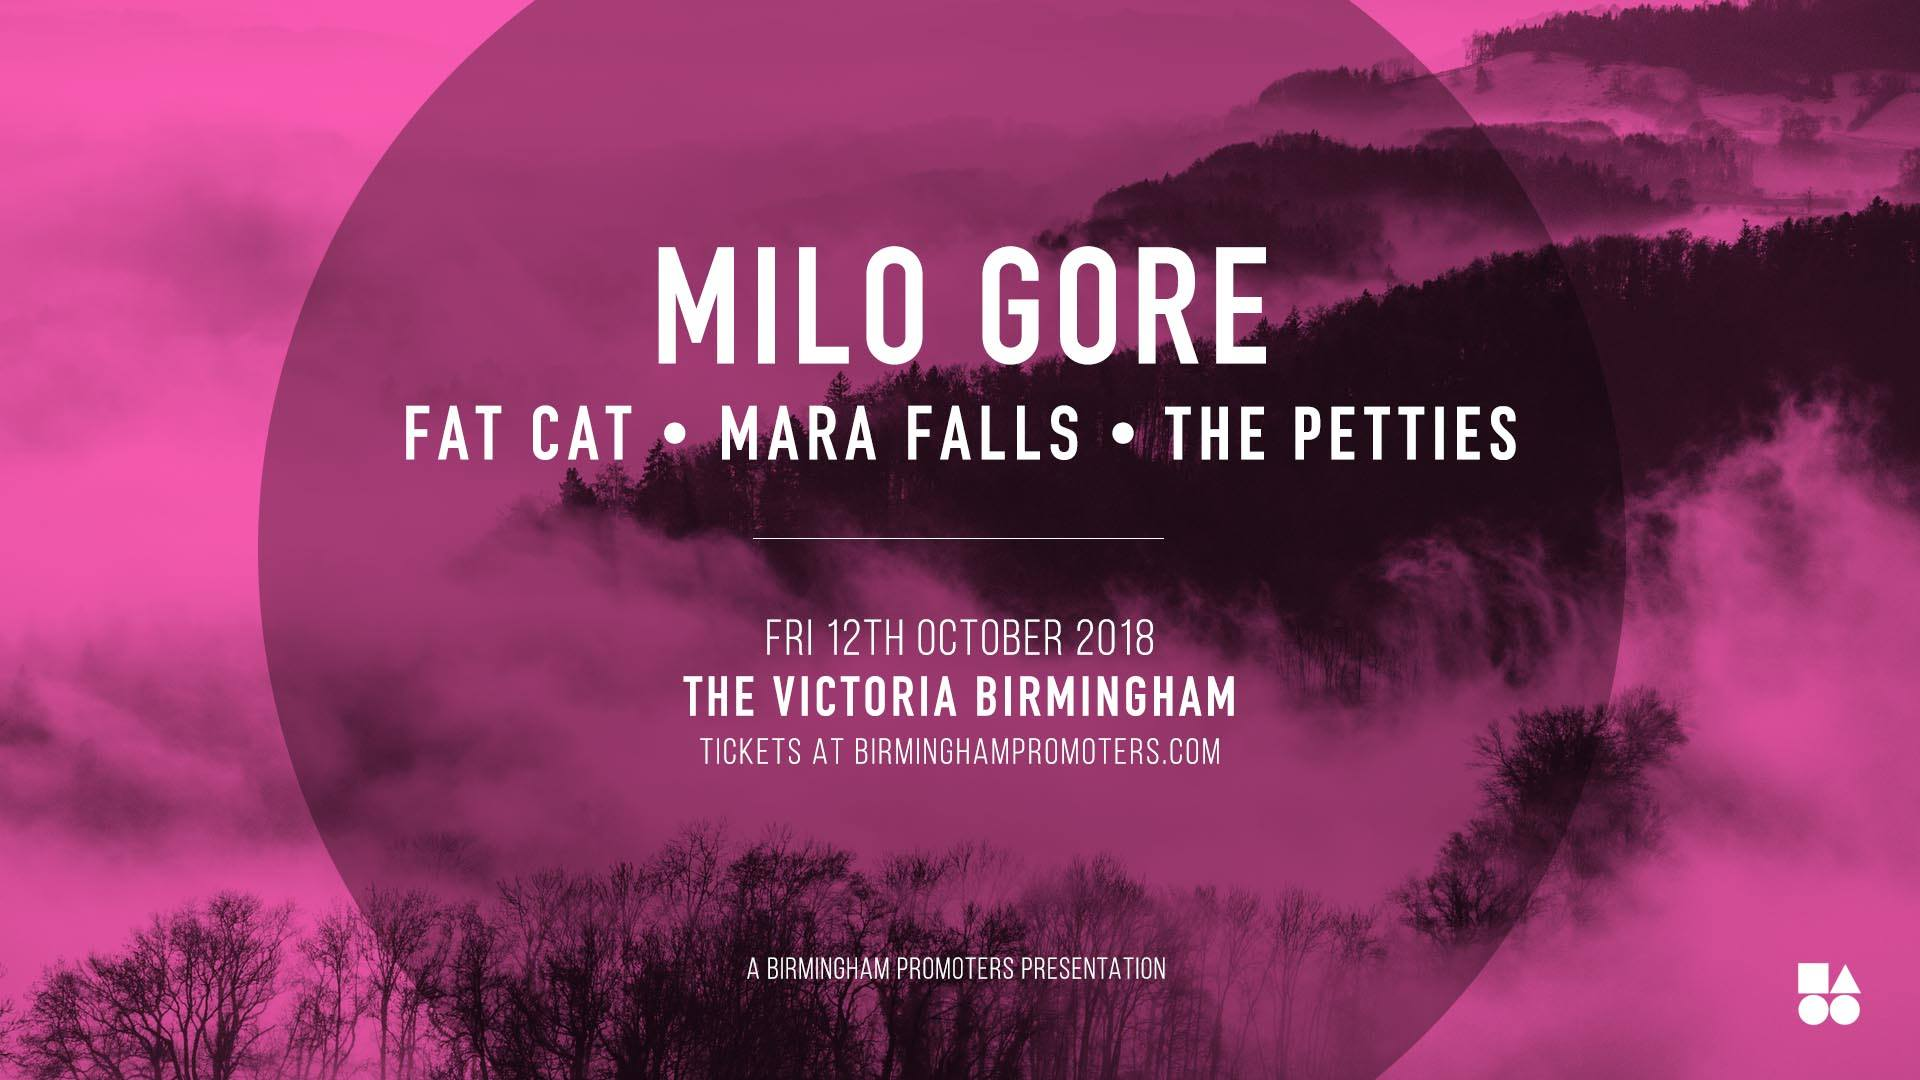 Mara Falls play The Victoria, Birmingham. Supporting Milo Gore - 12th October 2018